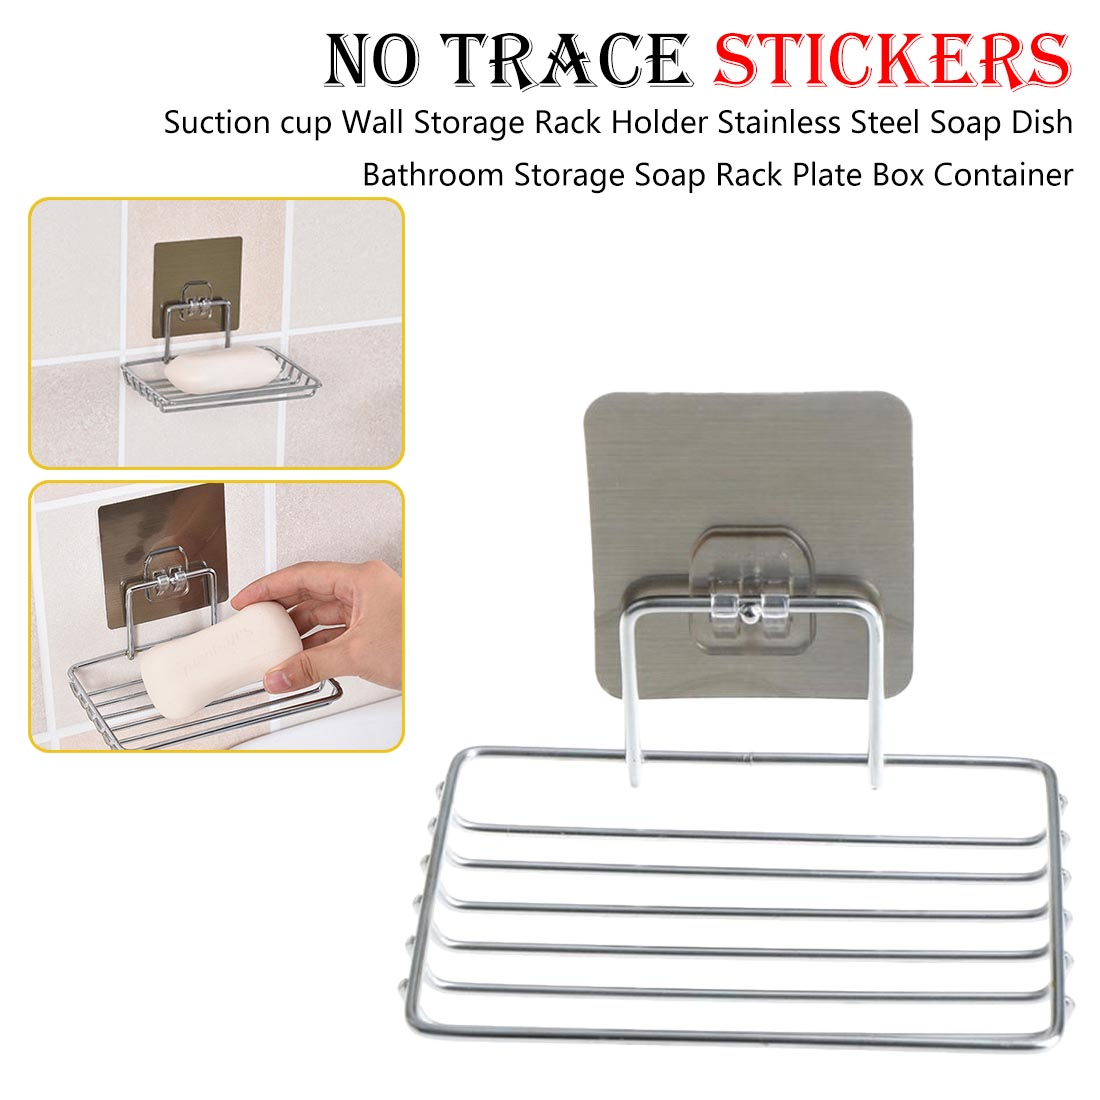 Suction cup Wall Storage Rack Holder Stainless Steel Soap Dish Bathroom Storage Soap Rack Plate Box Container(China)